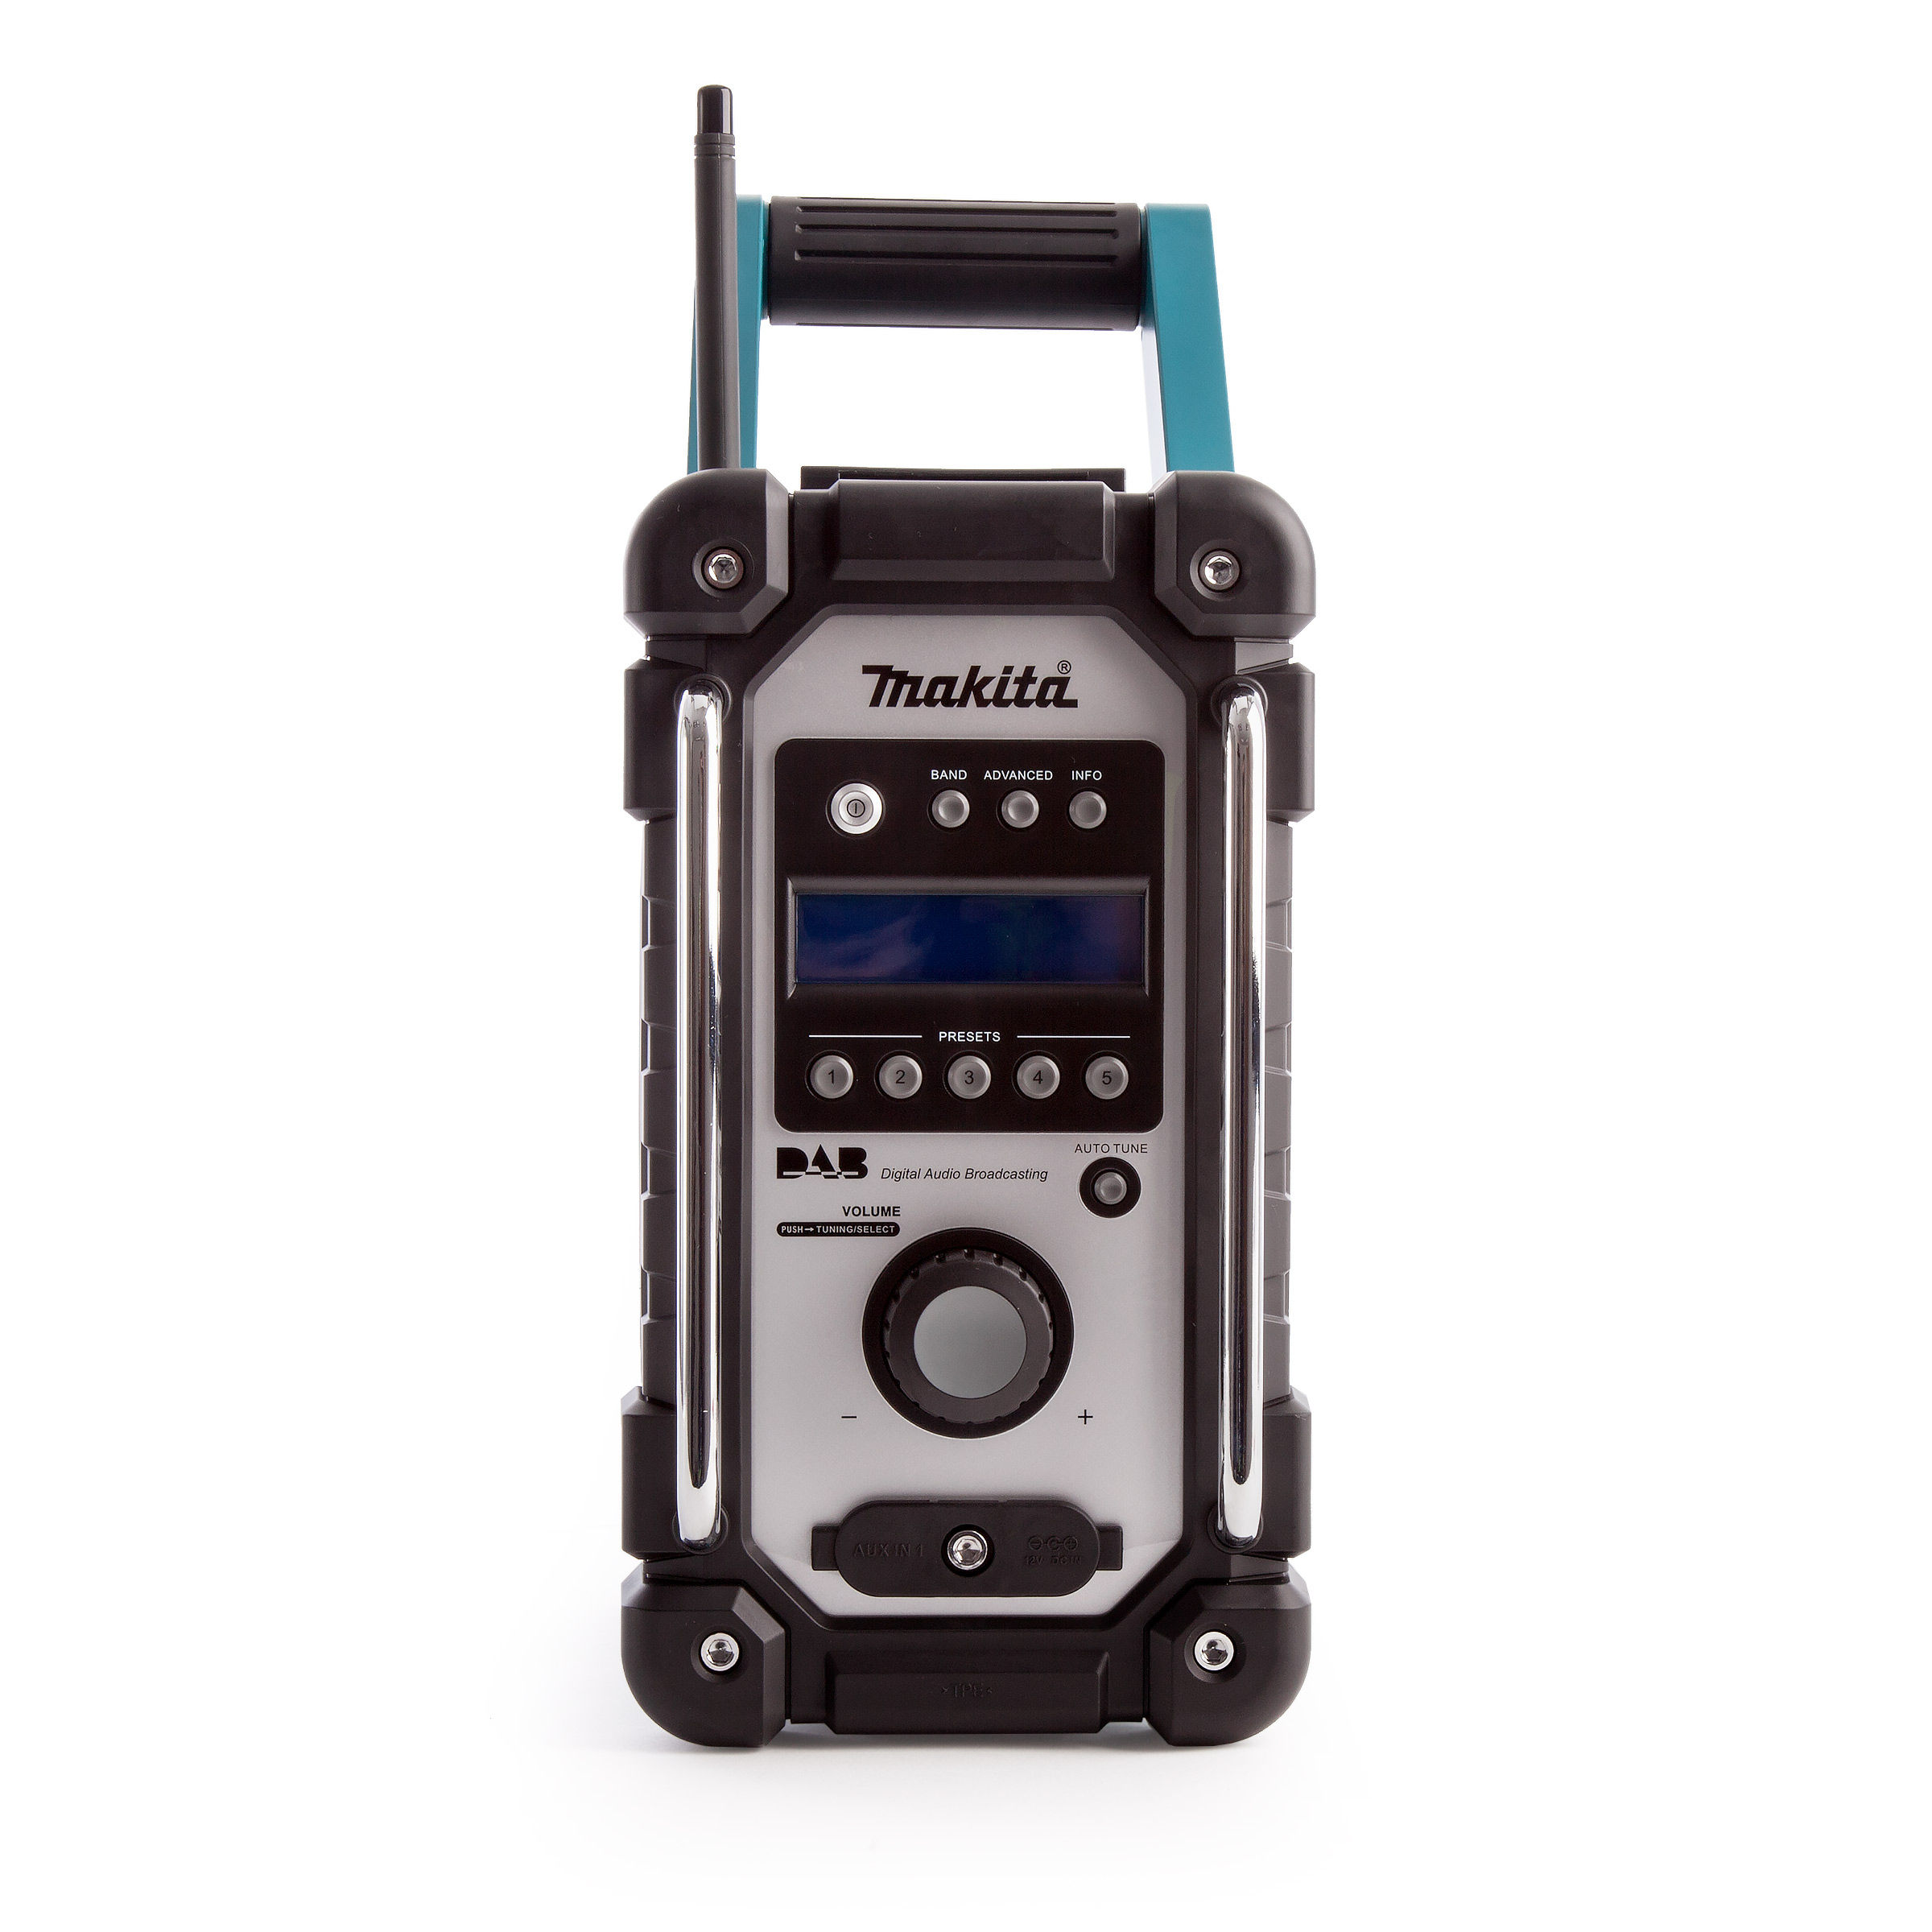 toolstop makita dmr104 job site radio stereo with dab and. Black Bedroom Furniture Sets. Home Design Ideas